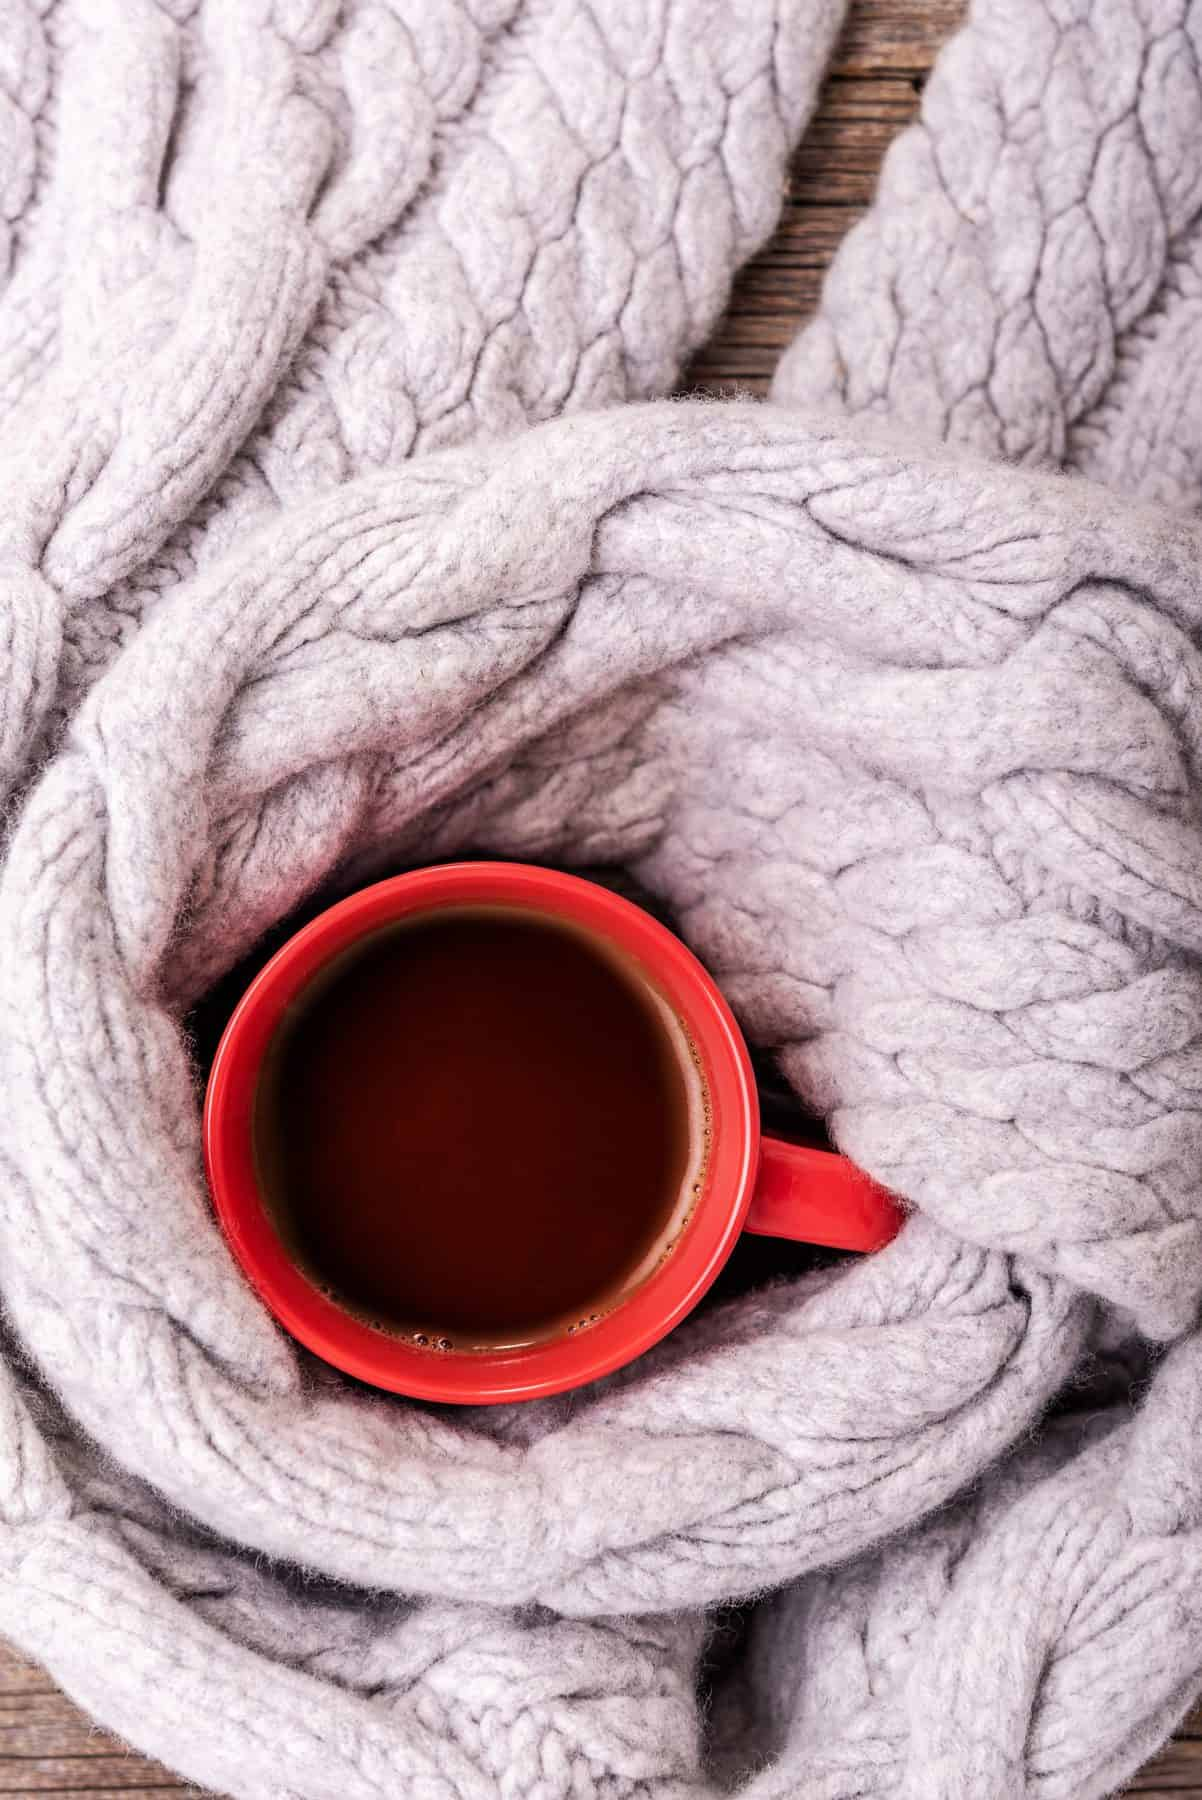 A scarf is wrapped around a red cup full of tea.